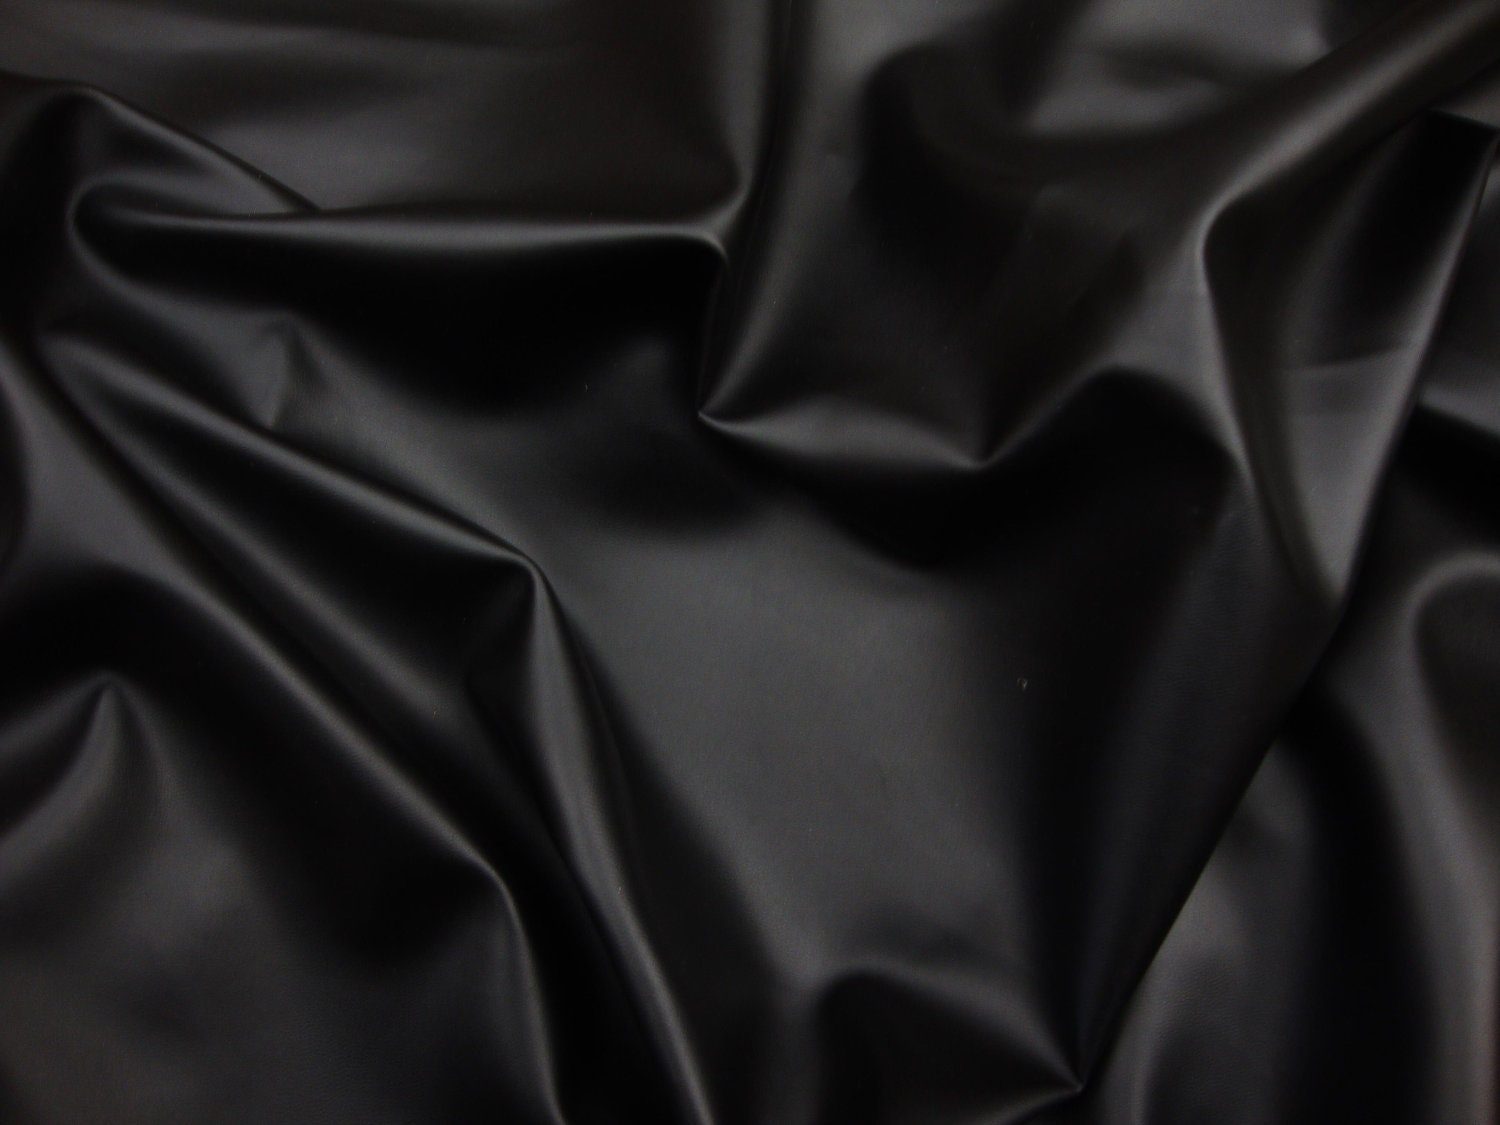 Vinyl Faux Leather Black Soft Skin Clothing Upholstery